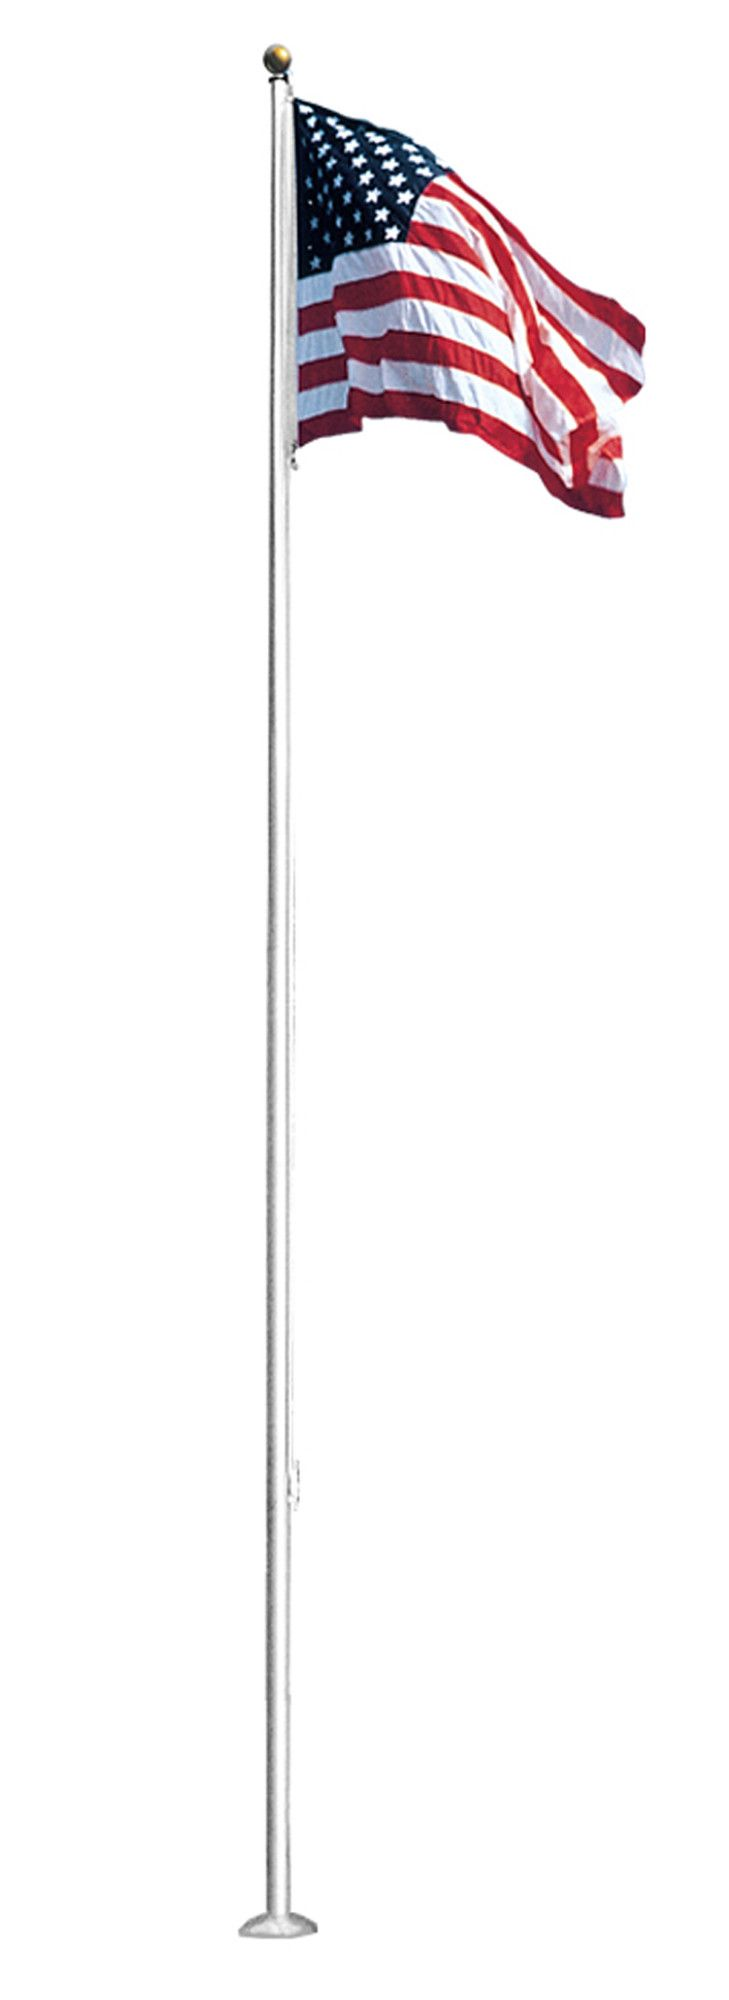 10 Foot Aluminum Flag Pole